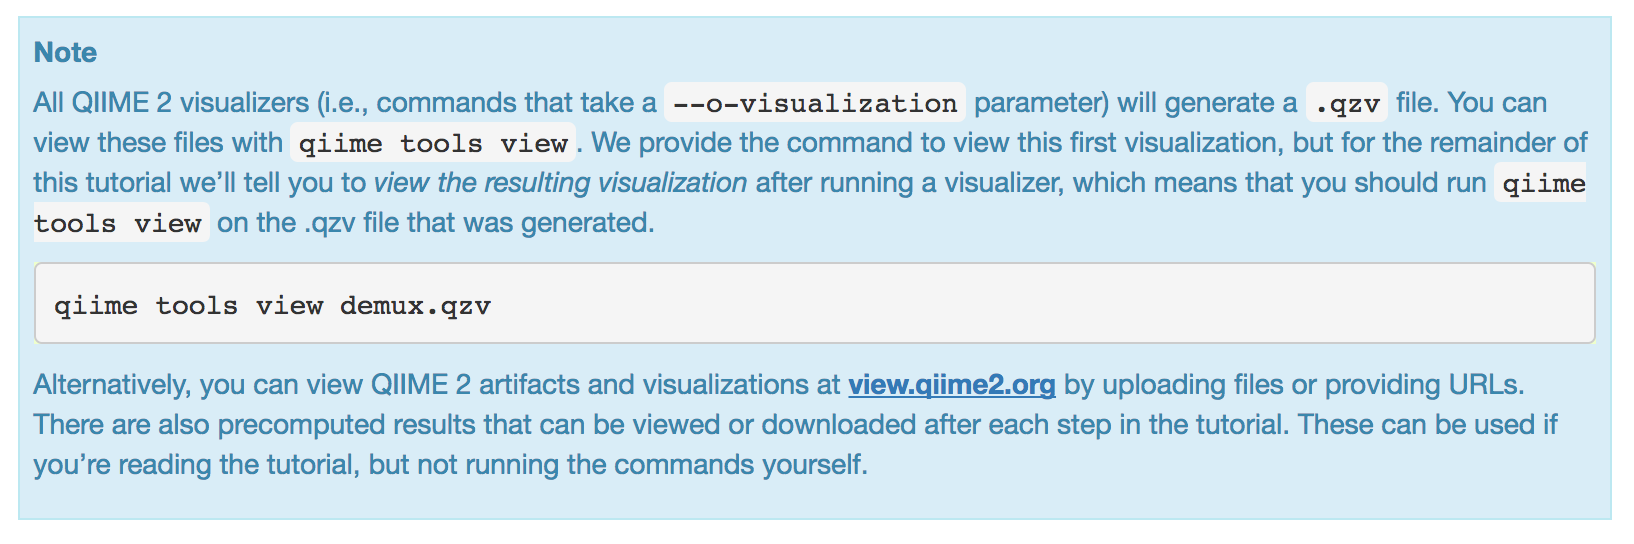 There is no quality plot in the demux.qzv - User Support - QIIME 2 Forum